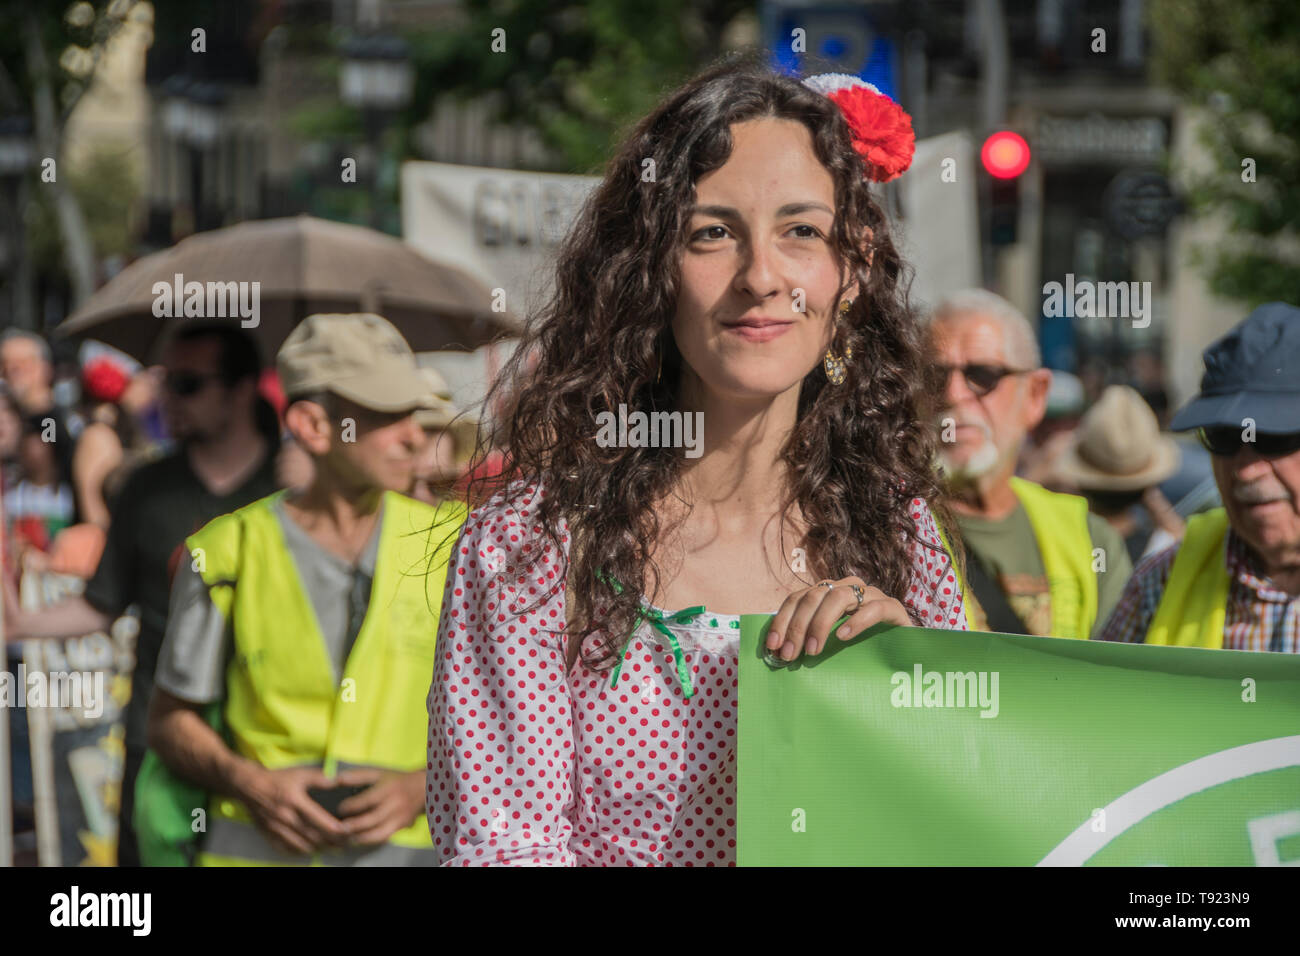 In the picture a girl with typical dress of San Iisdro Holliday in Madrid. 8 years celebration of the political project in Madrid 15 m, the people of  - Stock Image